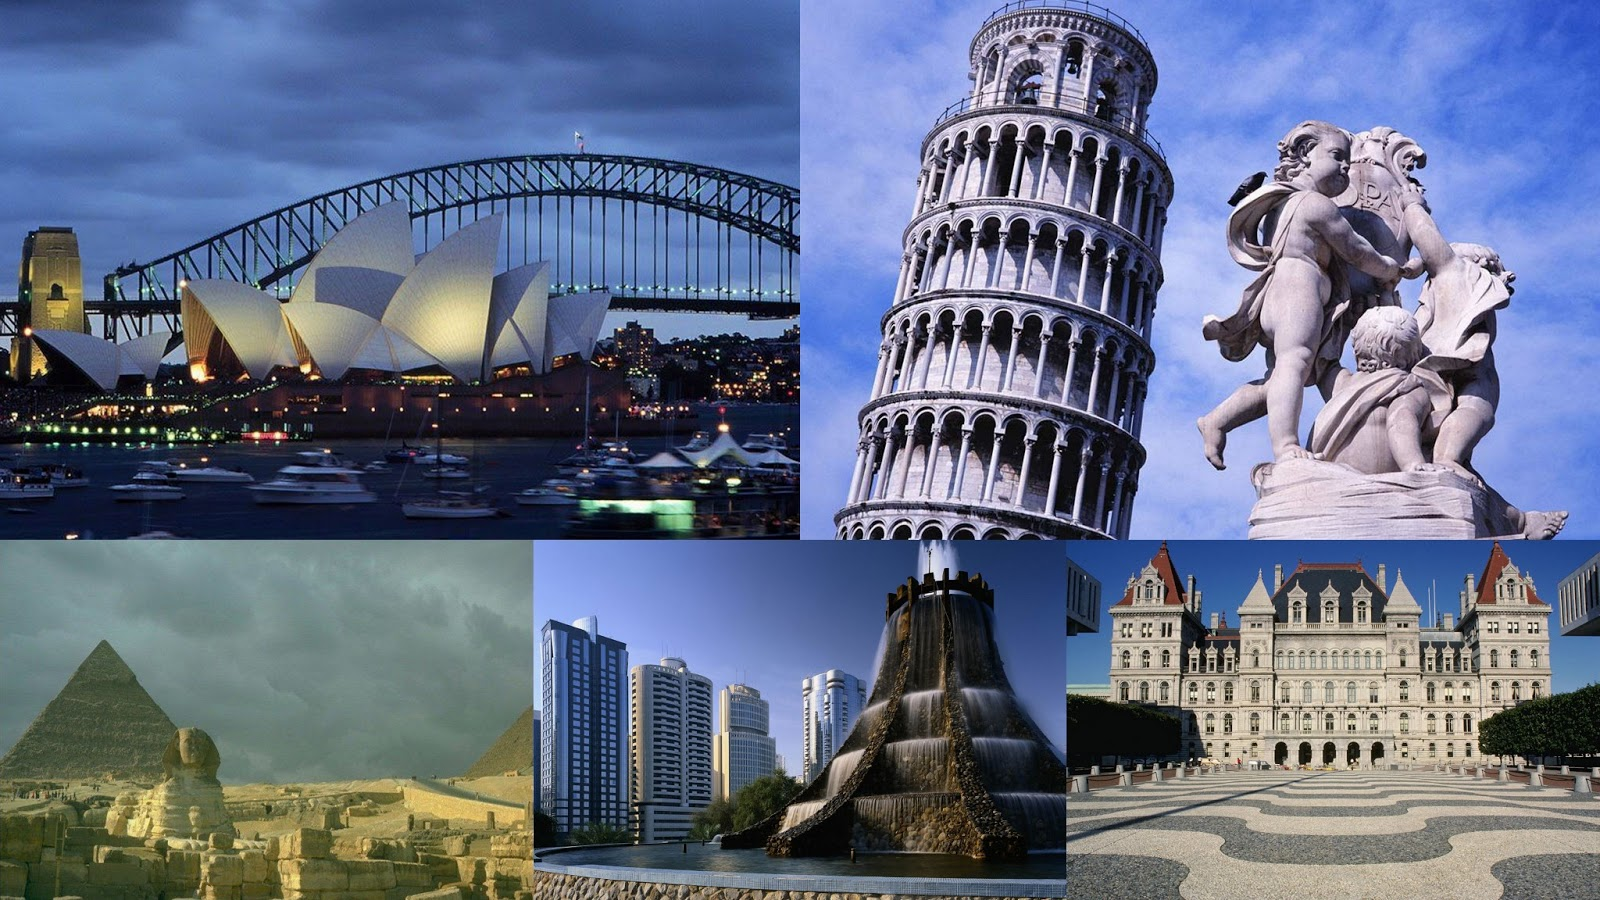 Around The World HD Wallpapers Pack 1280x960   Wallpaper Packs 1600x900